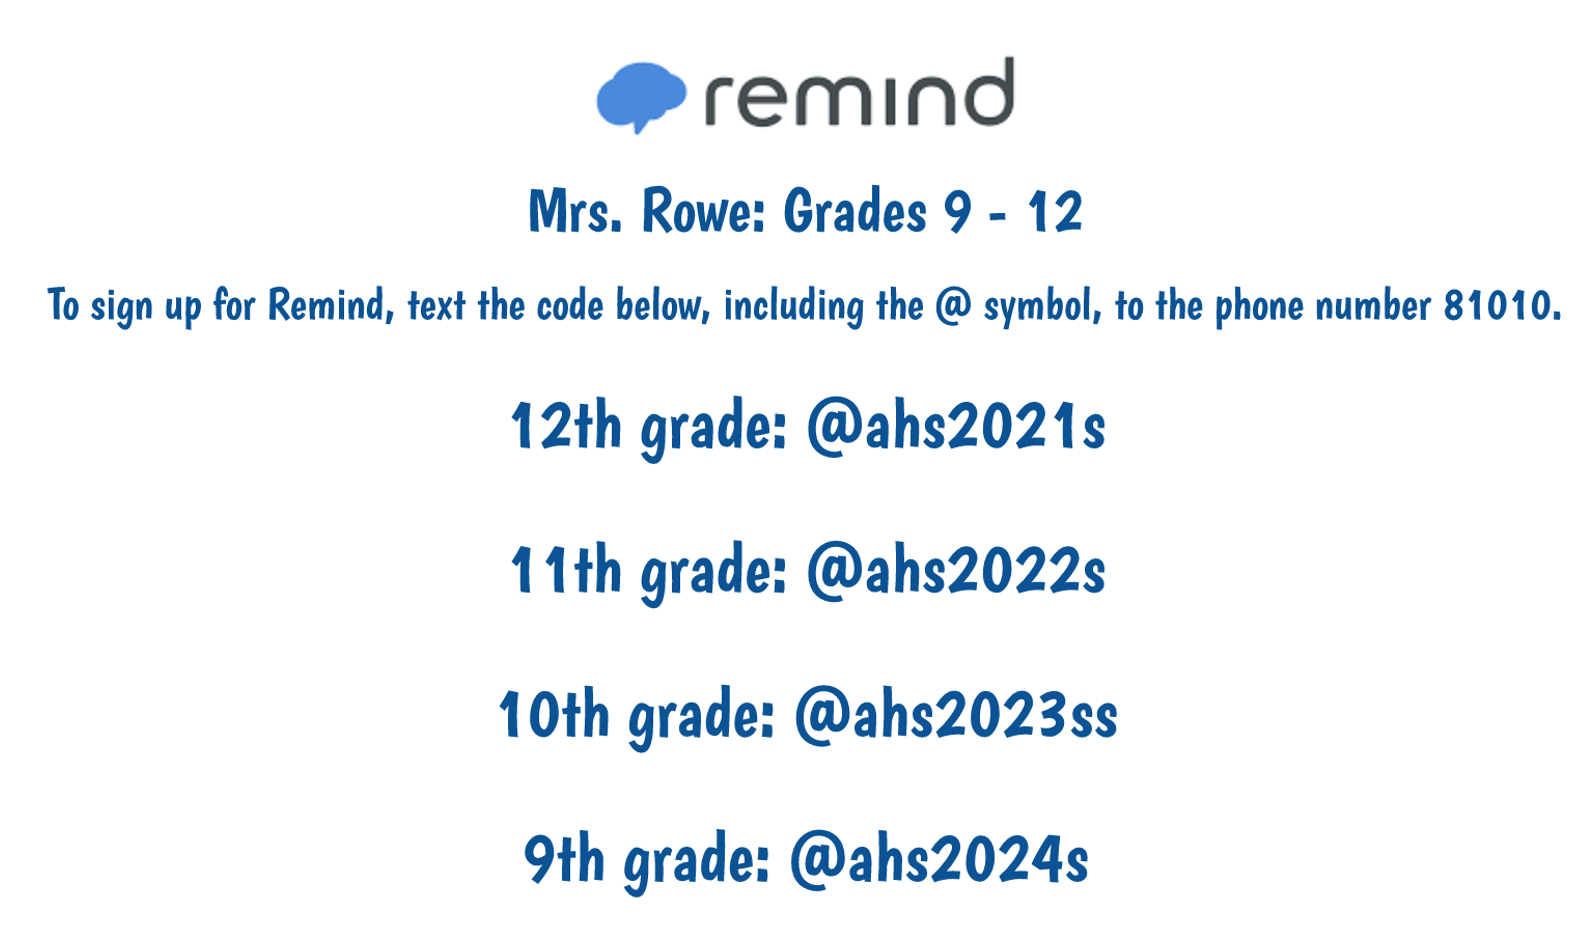 Join my Remind Groups to stay informed!